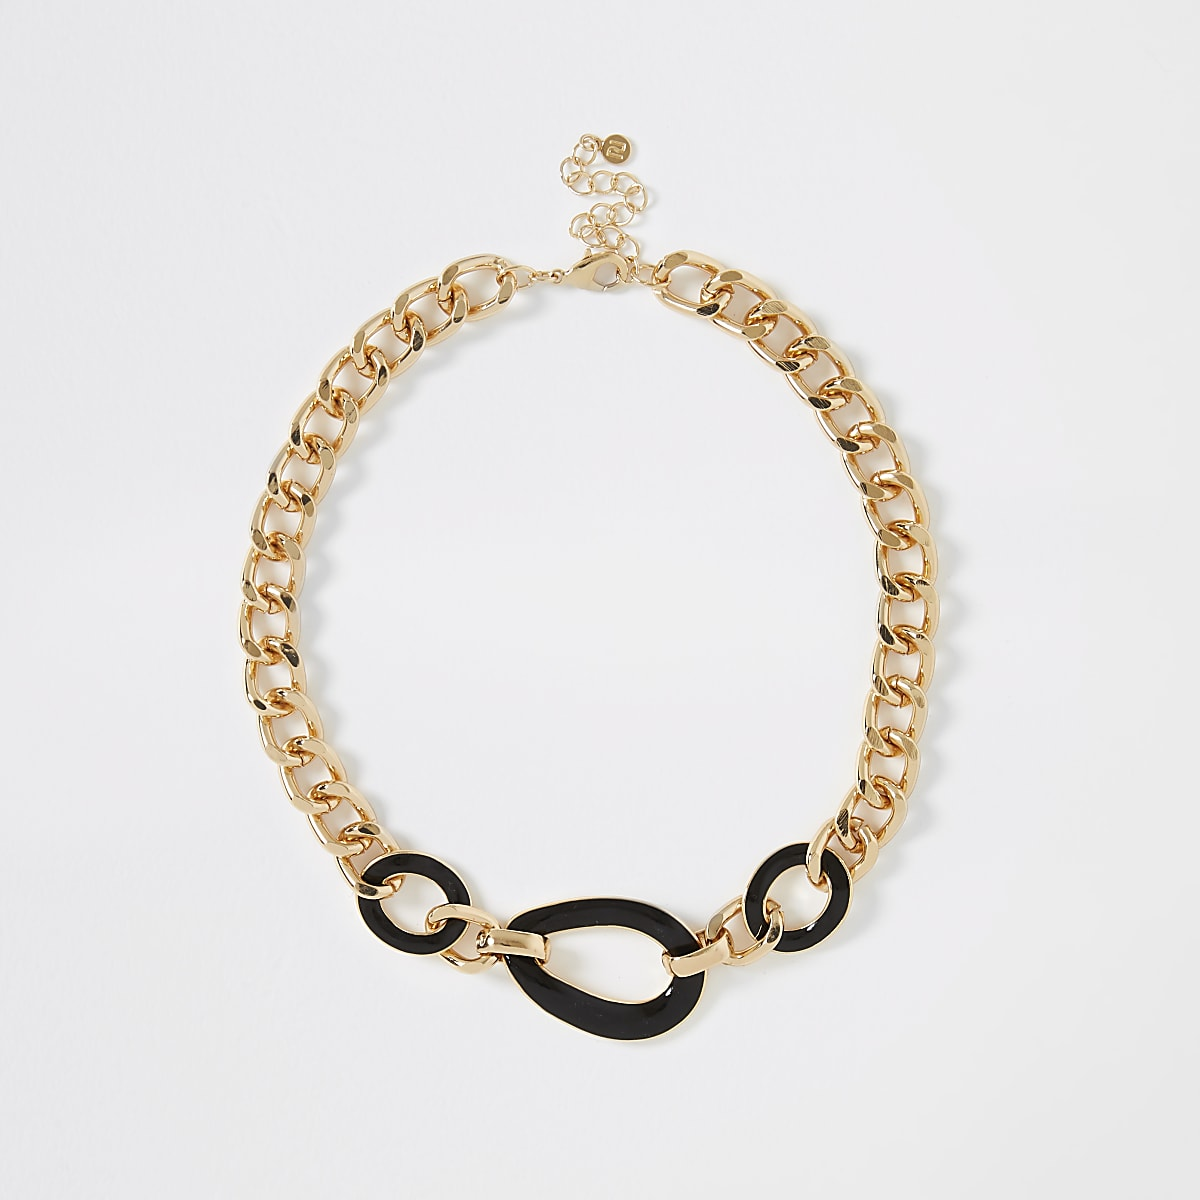 Gold color chunky interlink necklace